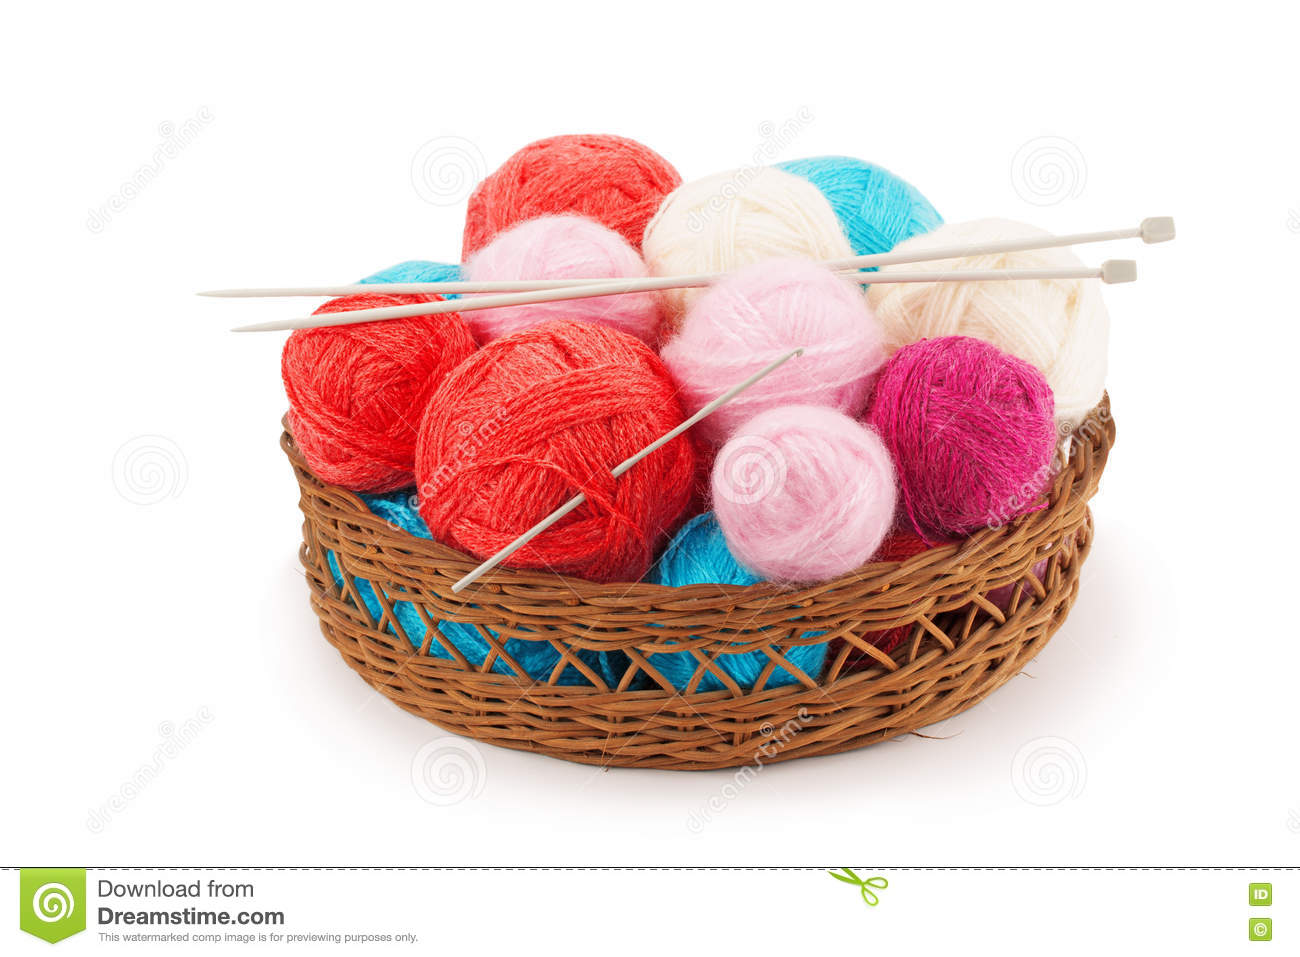 Knitting Basket Yarn : Yarn balls and knitting needles stock photo image